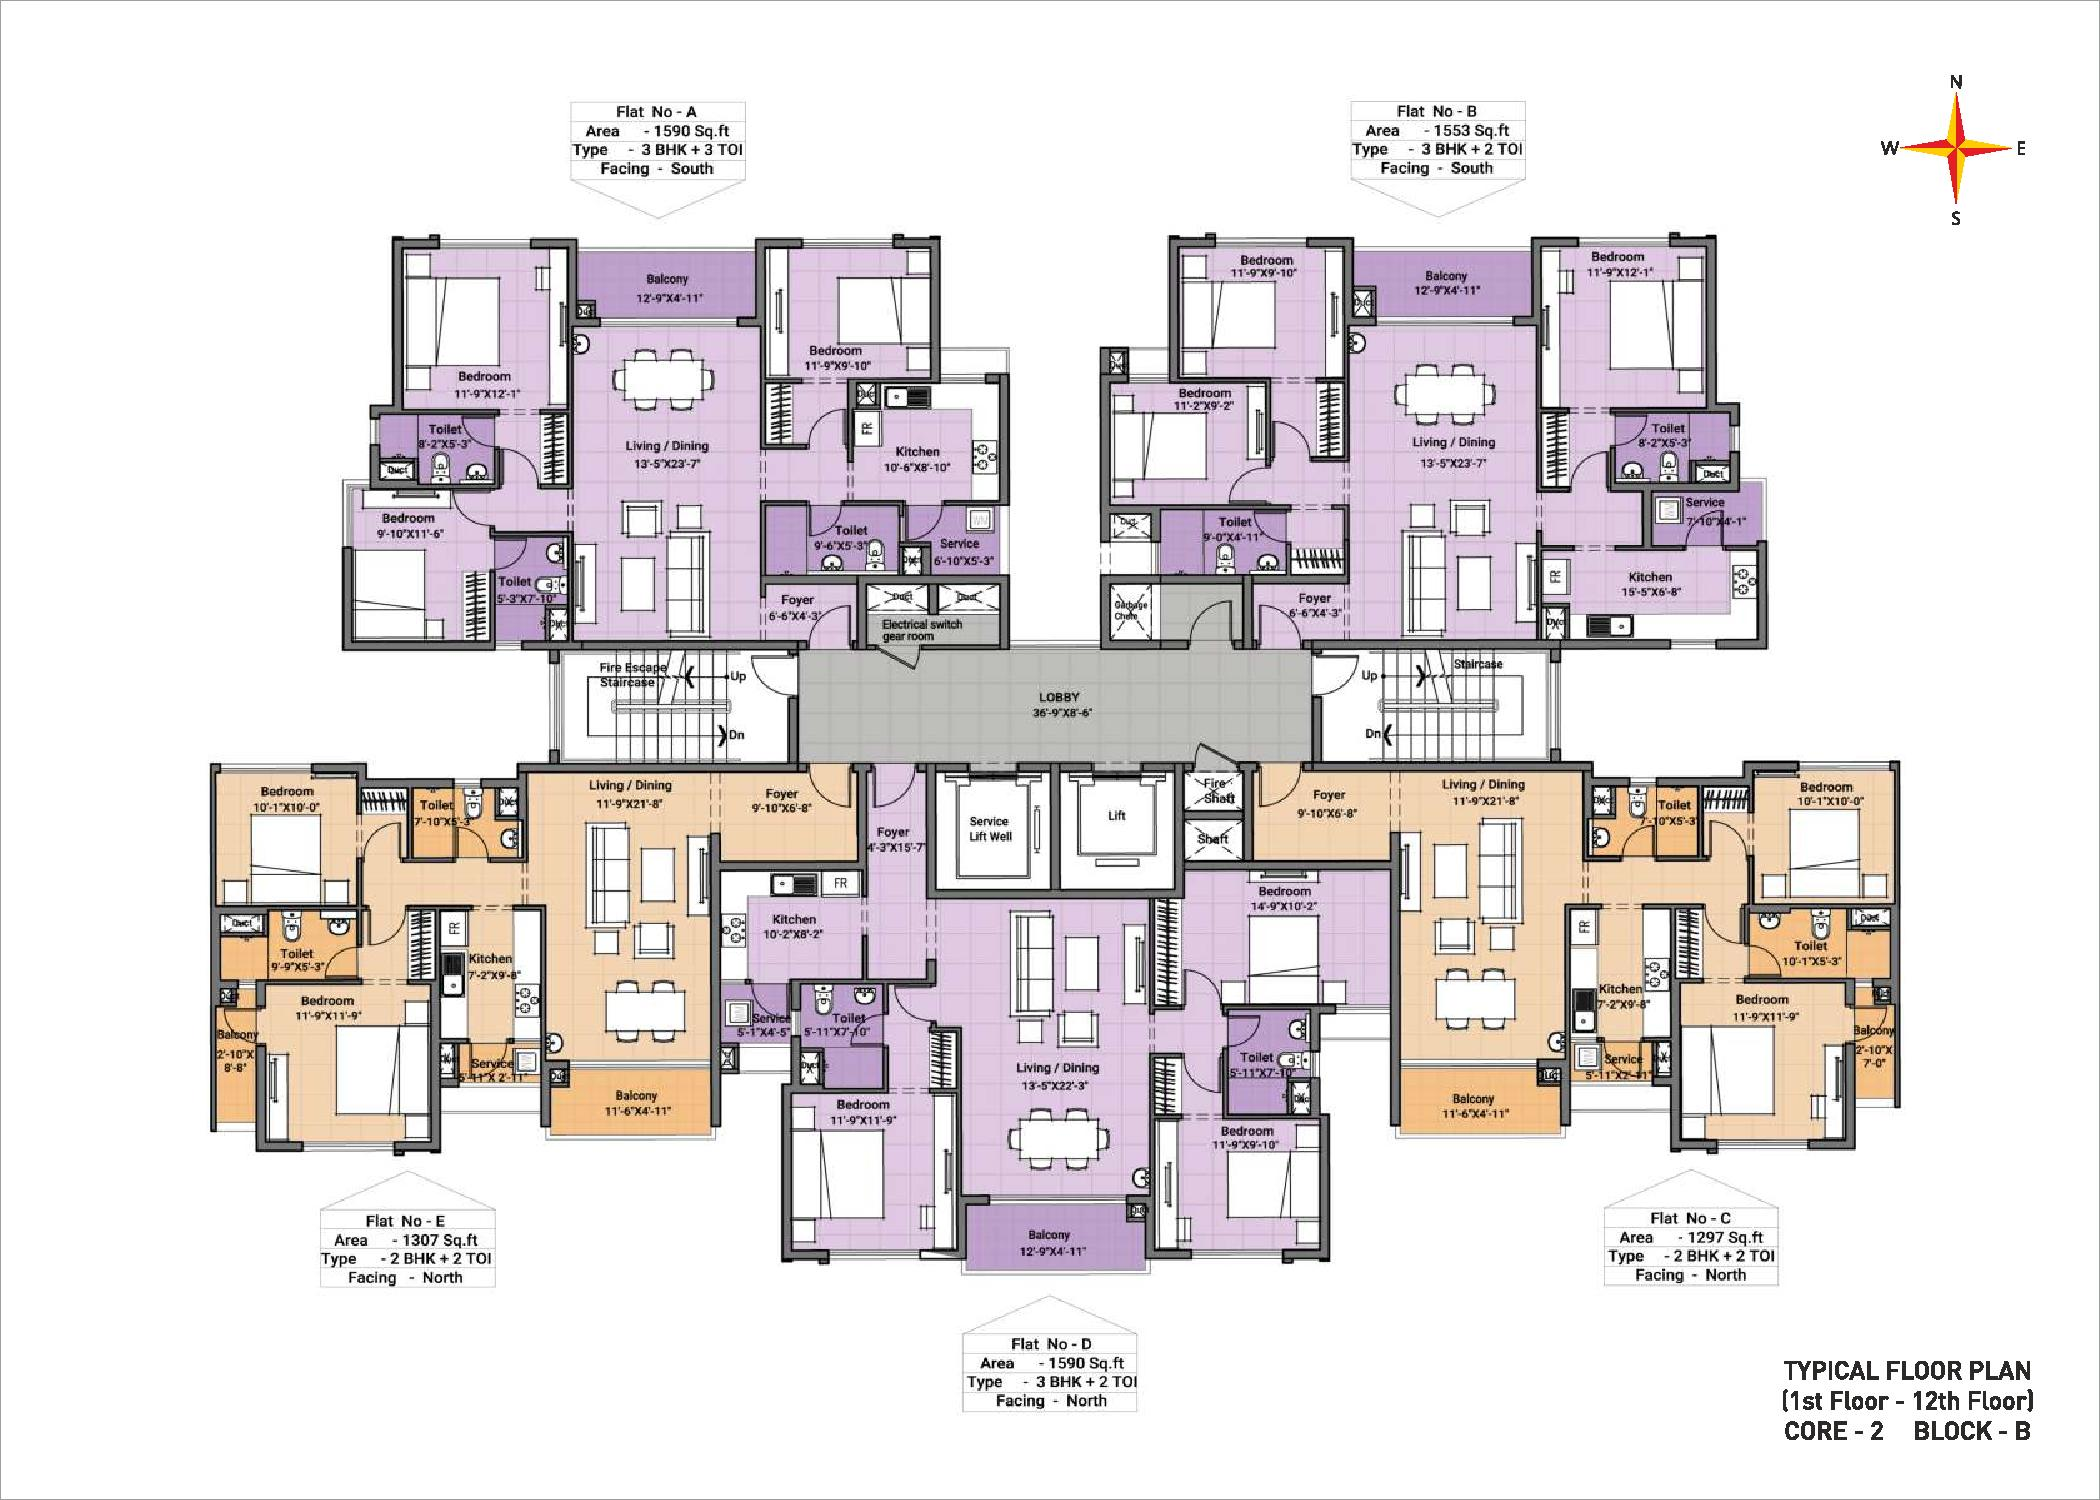 Typical floor plan - Block B Core 2(1-12th floor)